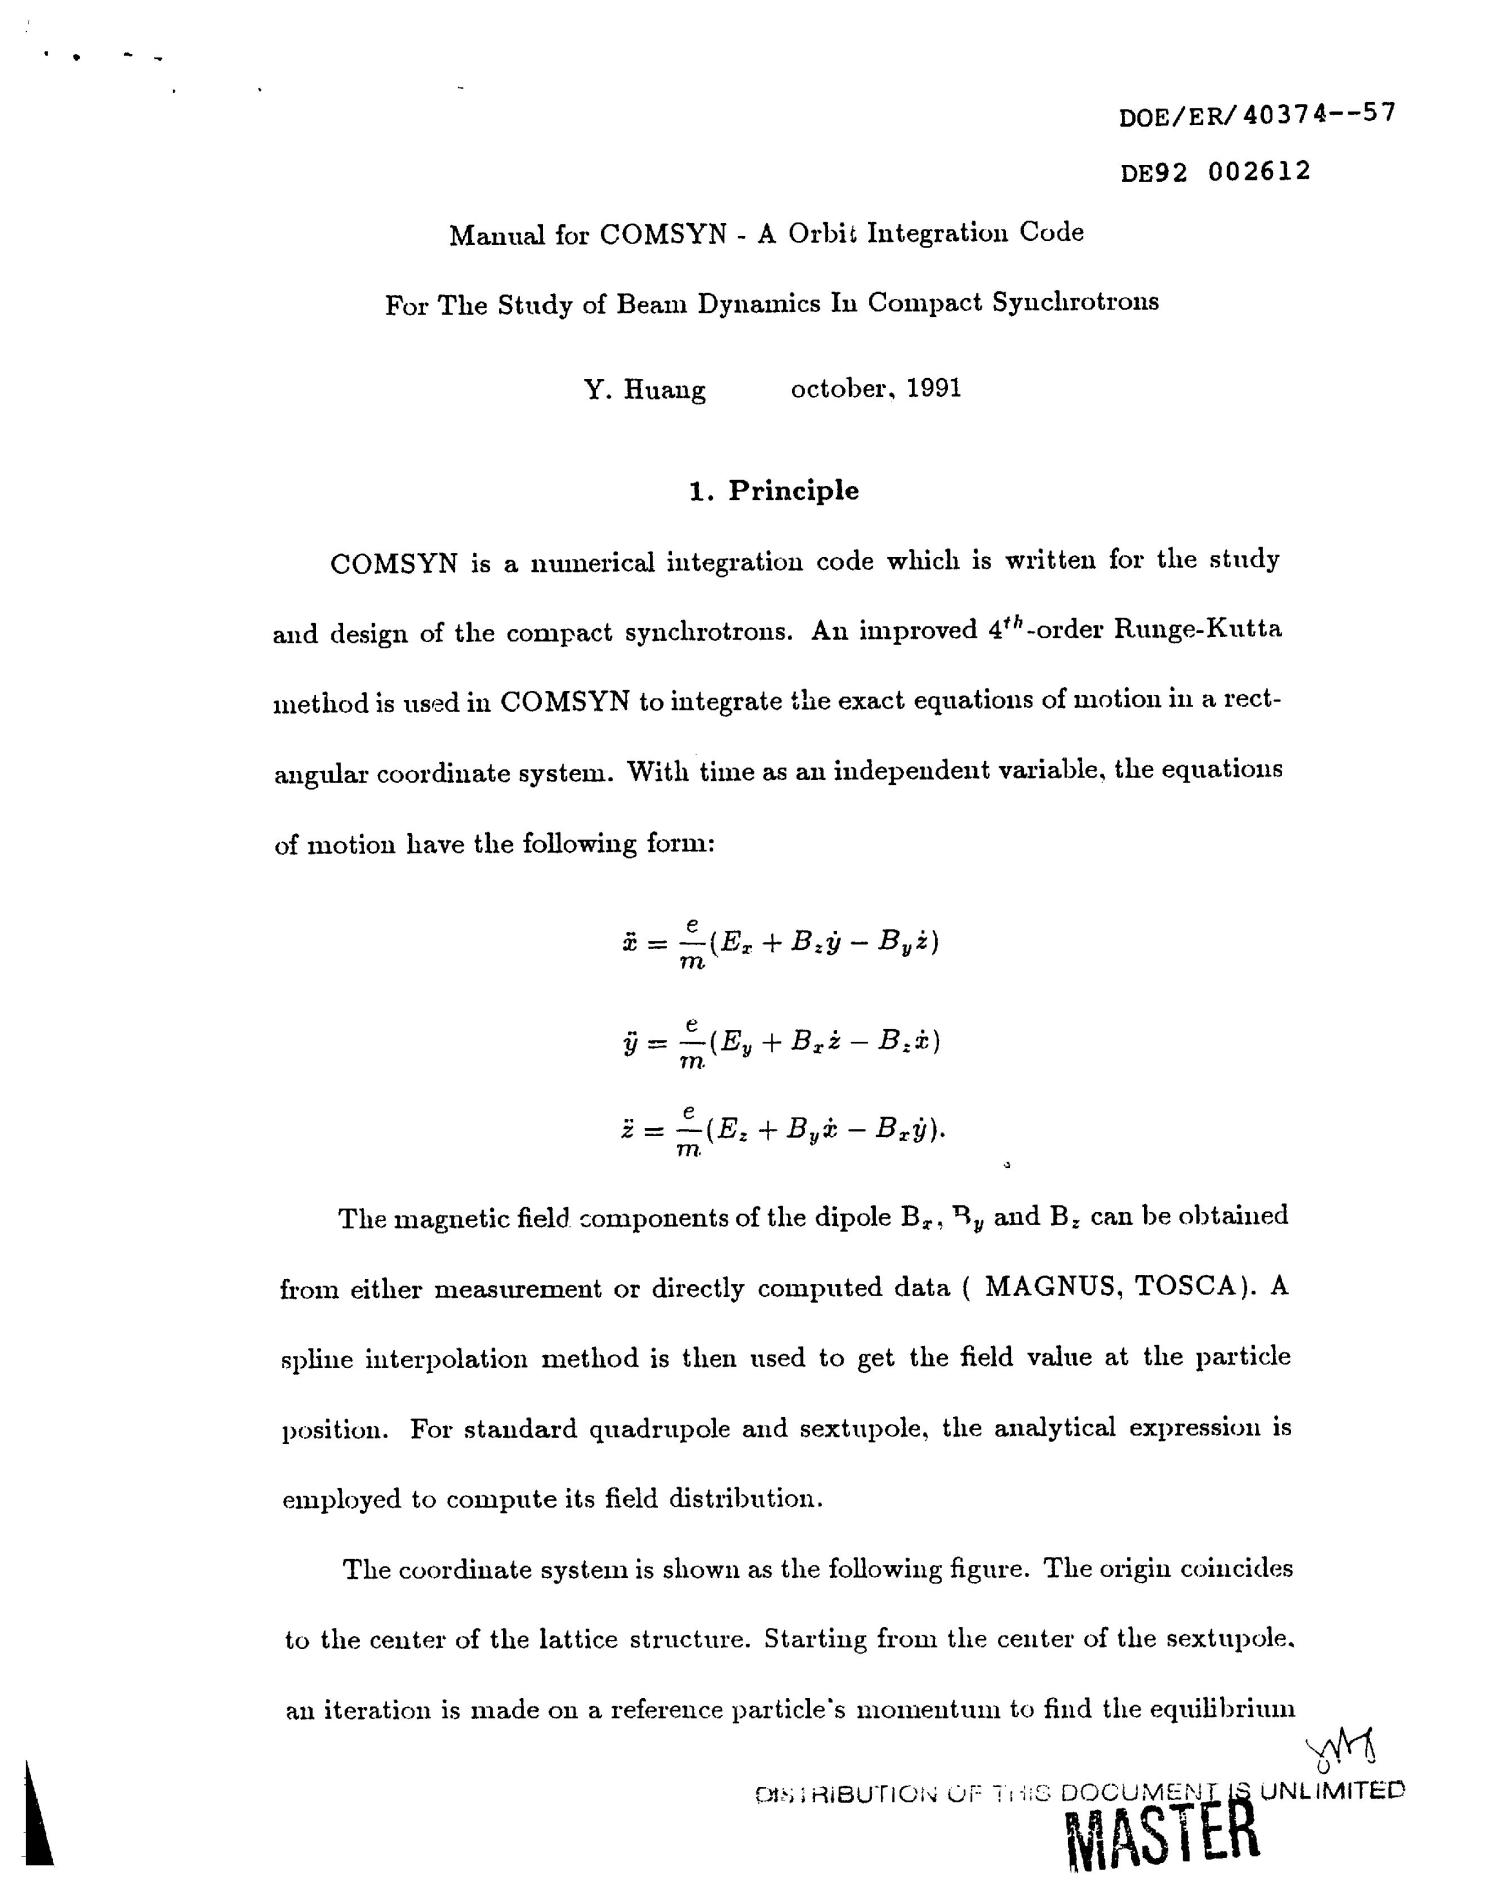 Manual for COMSYN: A orbit integration code for the study of beam dynamics in compact synchrotrons                                                                                                      [Sequence #]: 1 of 11